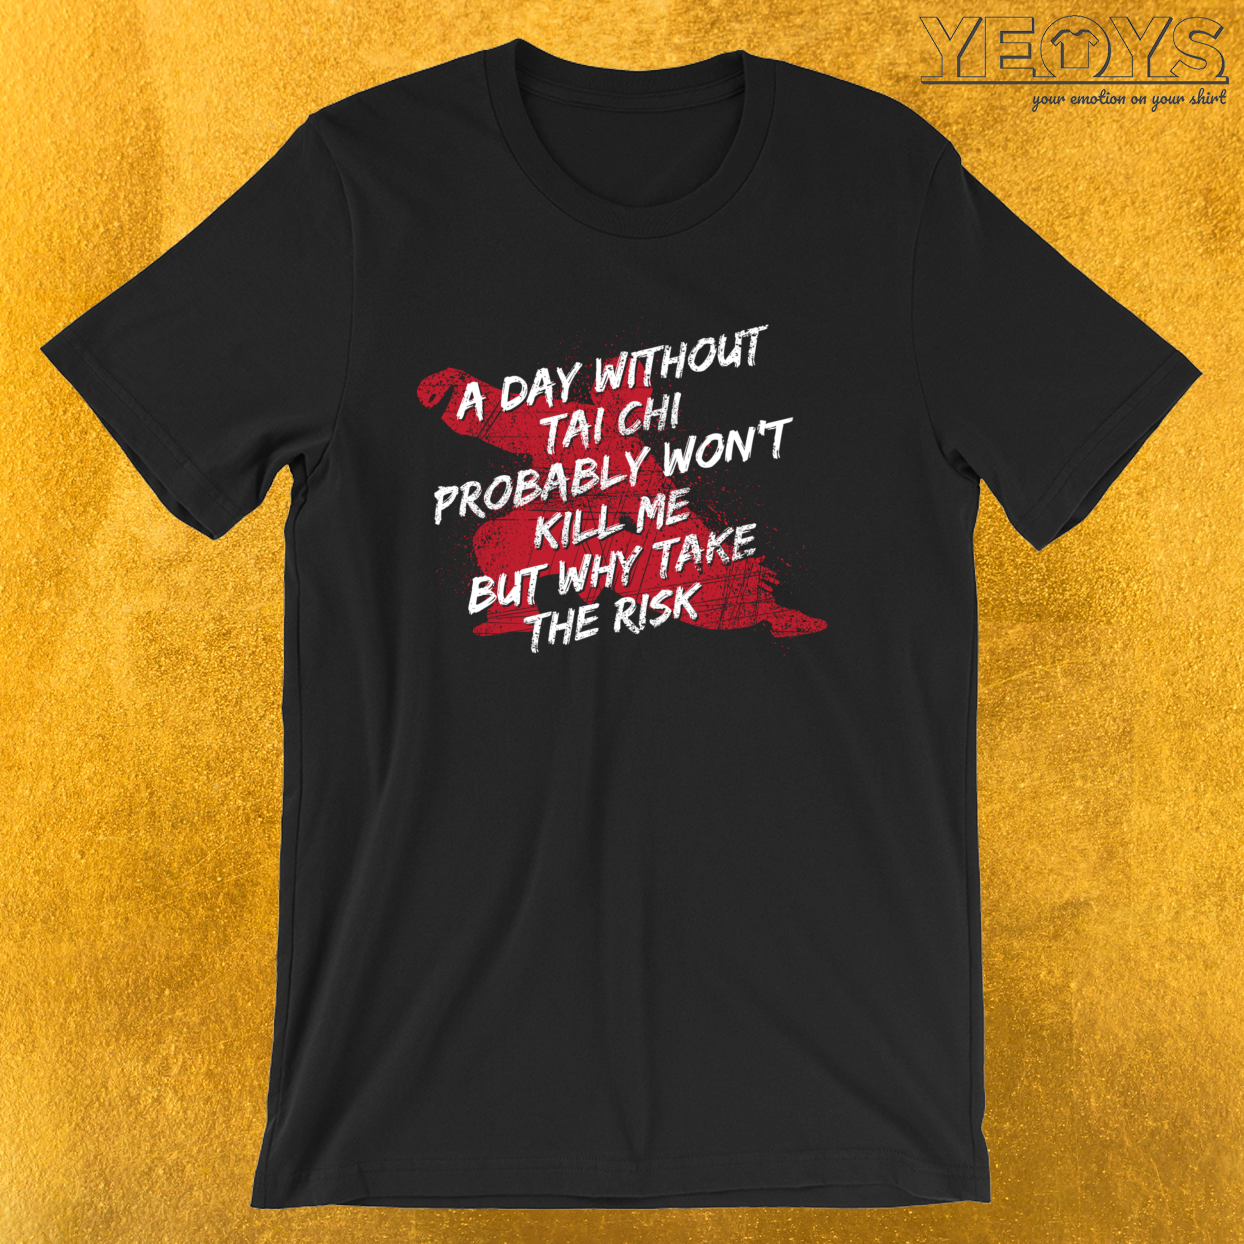 A Day Without Tai Chi Probably Won't Kill Me – Tai Chi Chuan Tee